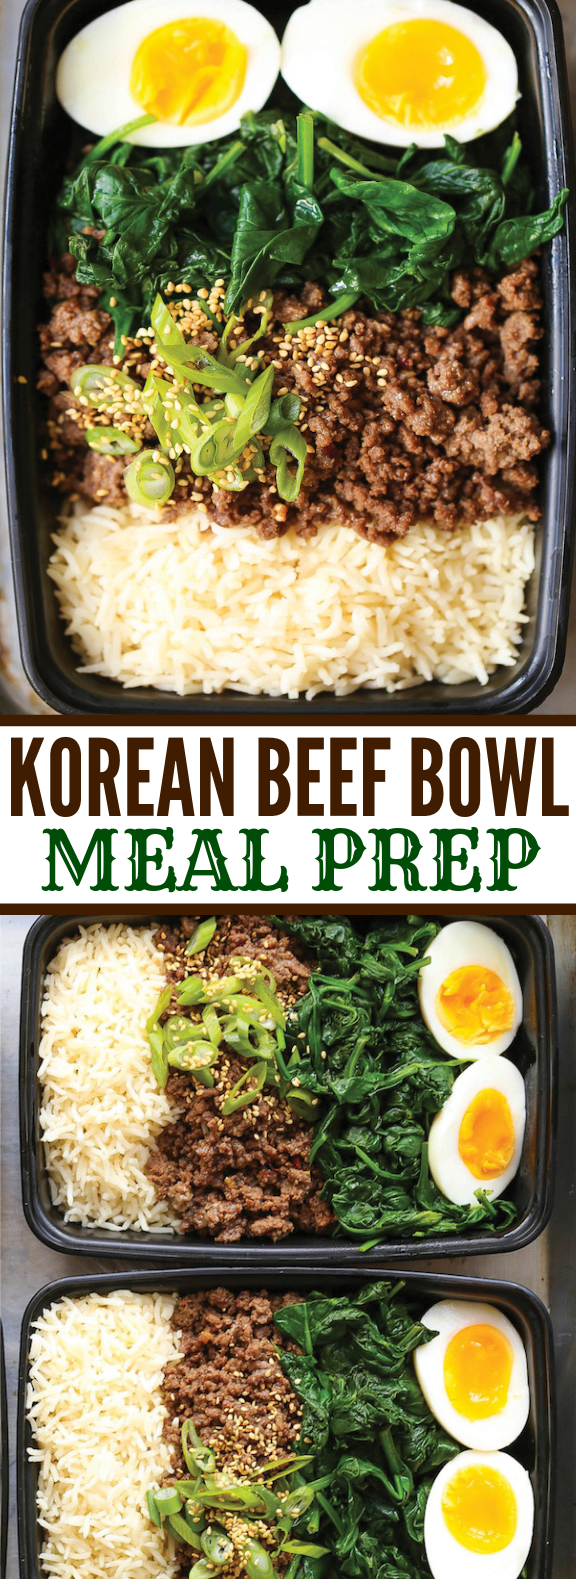 Photo of KOREAN BEEF BOWL MEAL PREP #lunch #bbq